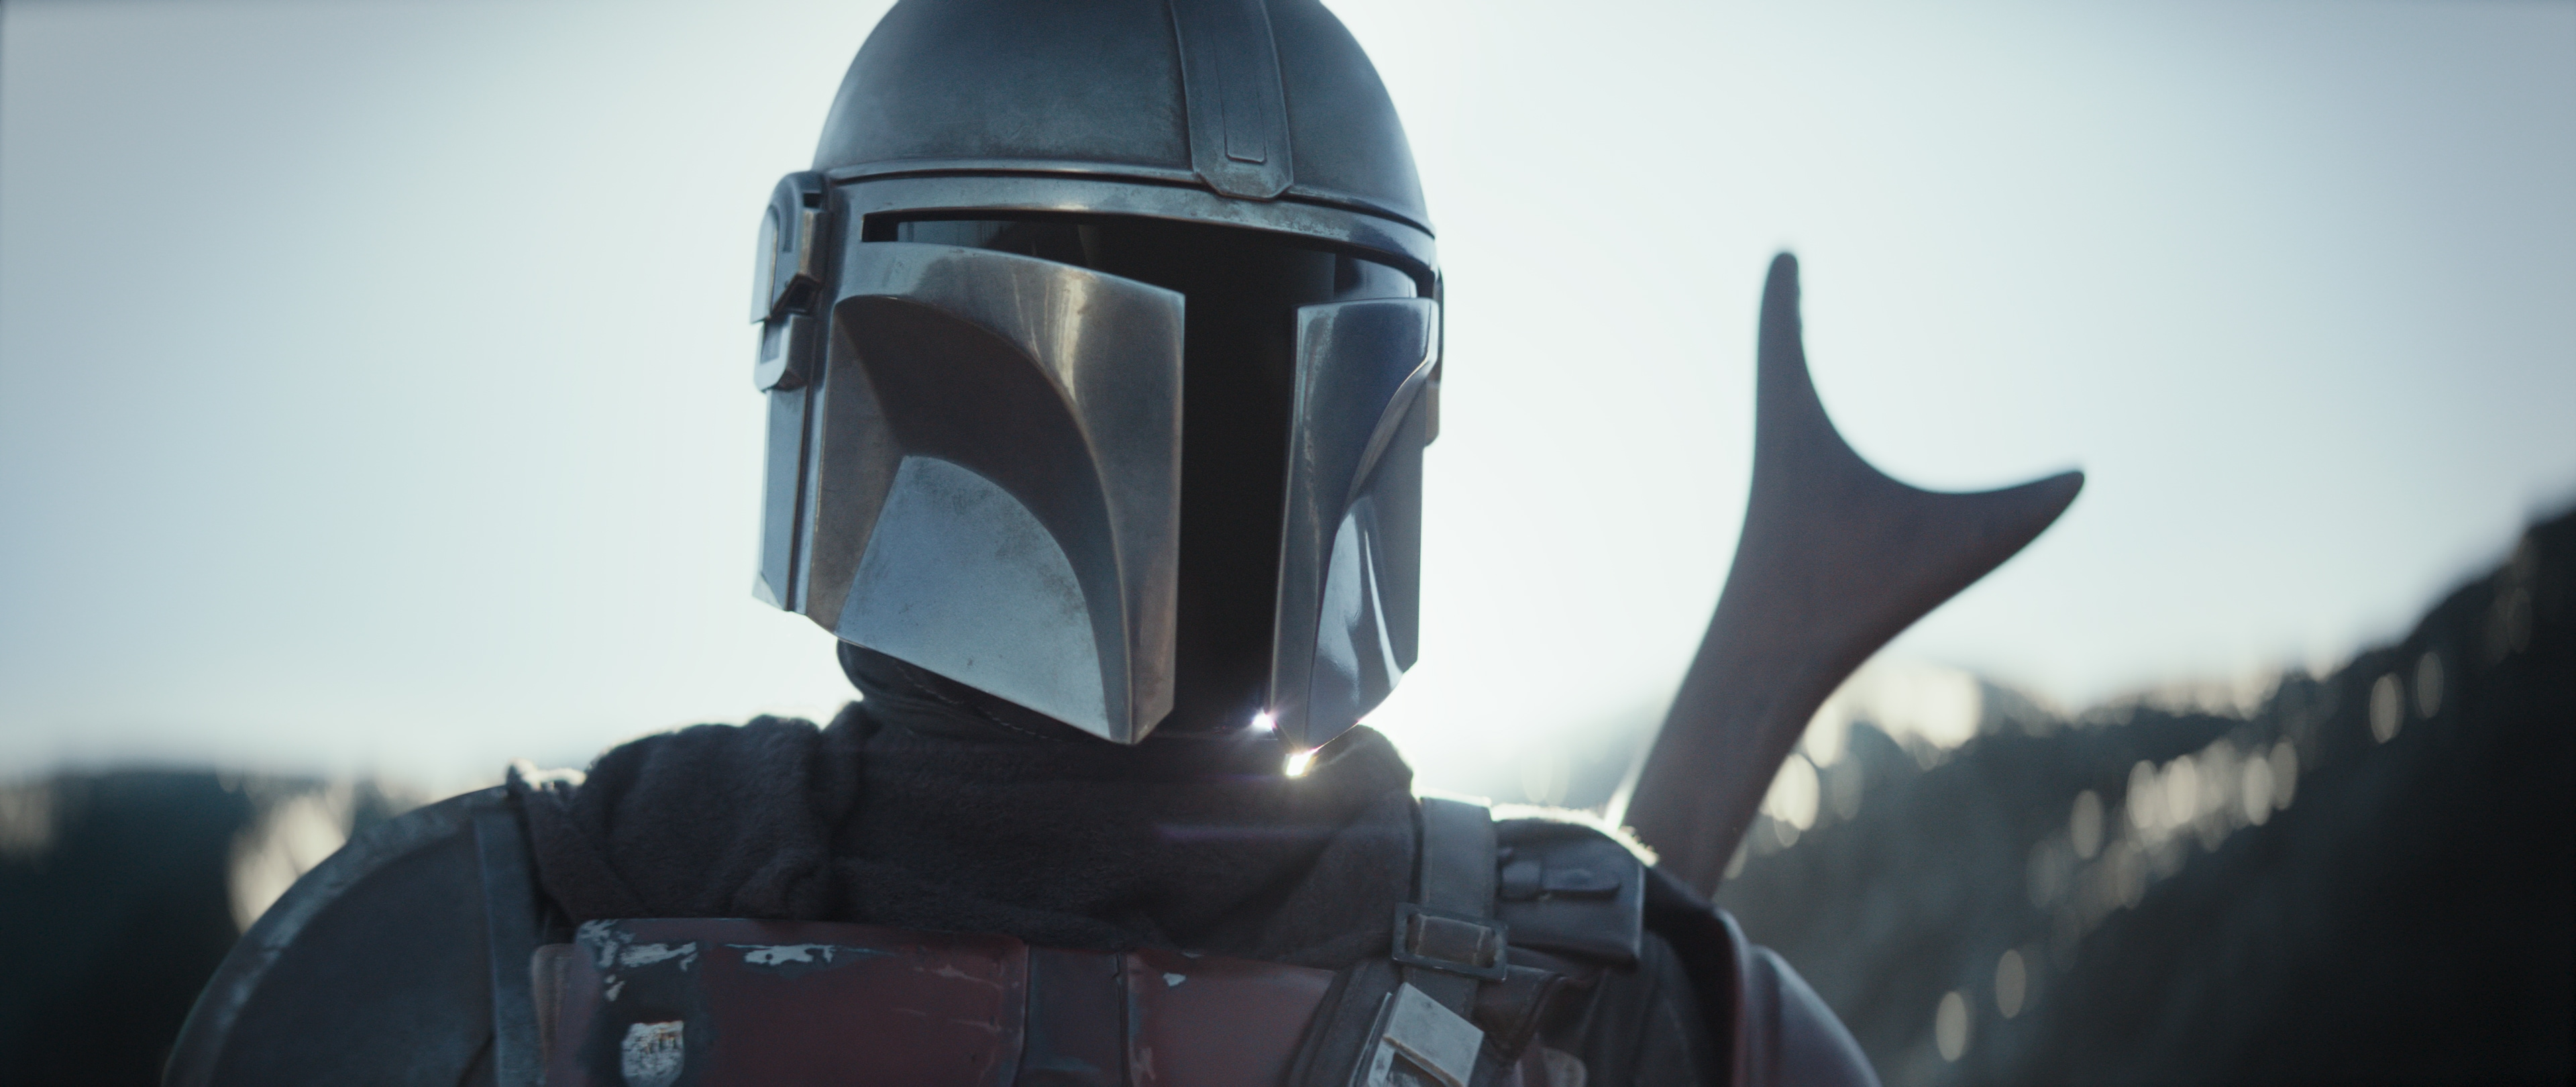 Disney made it official: We can talk about that Mandalorian character now